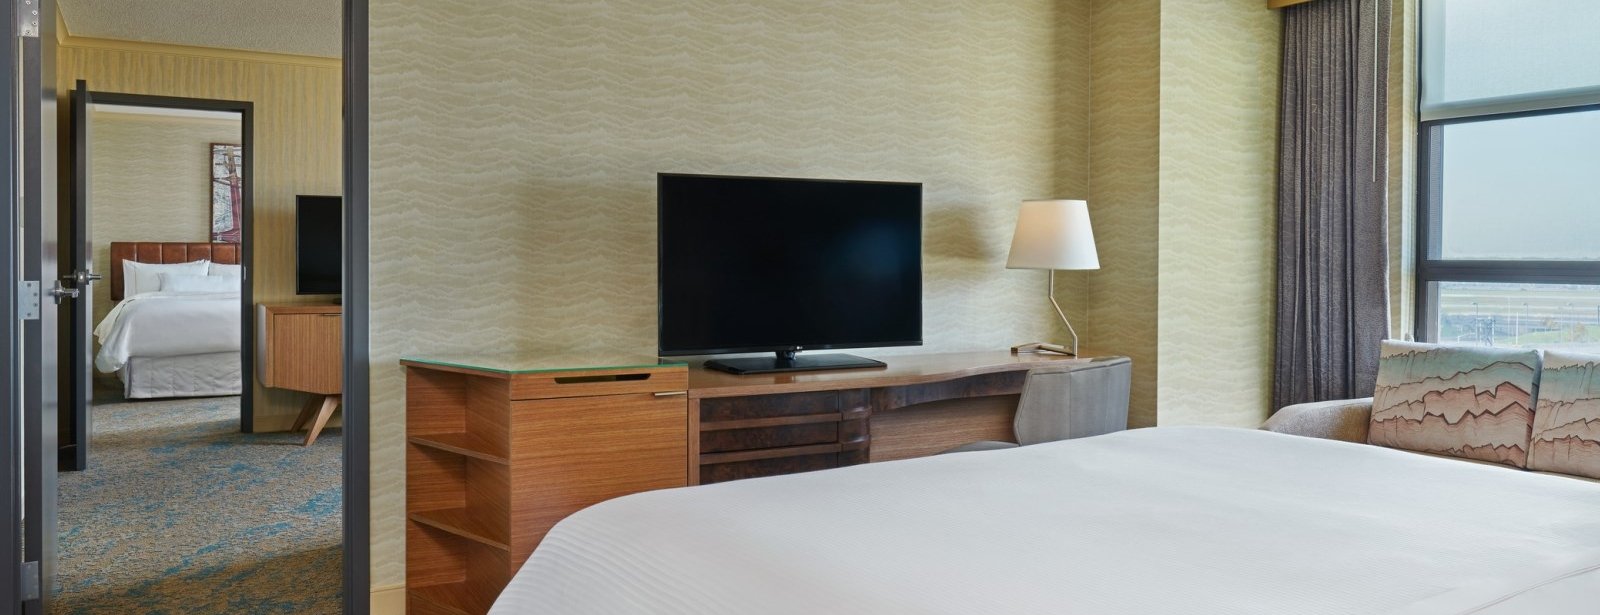 Two-Bedroom Suites | The Westin Detroit Metropolitan Airport Hotel